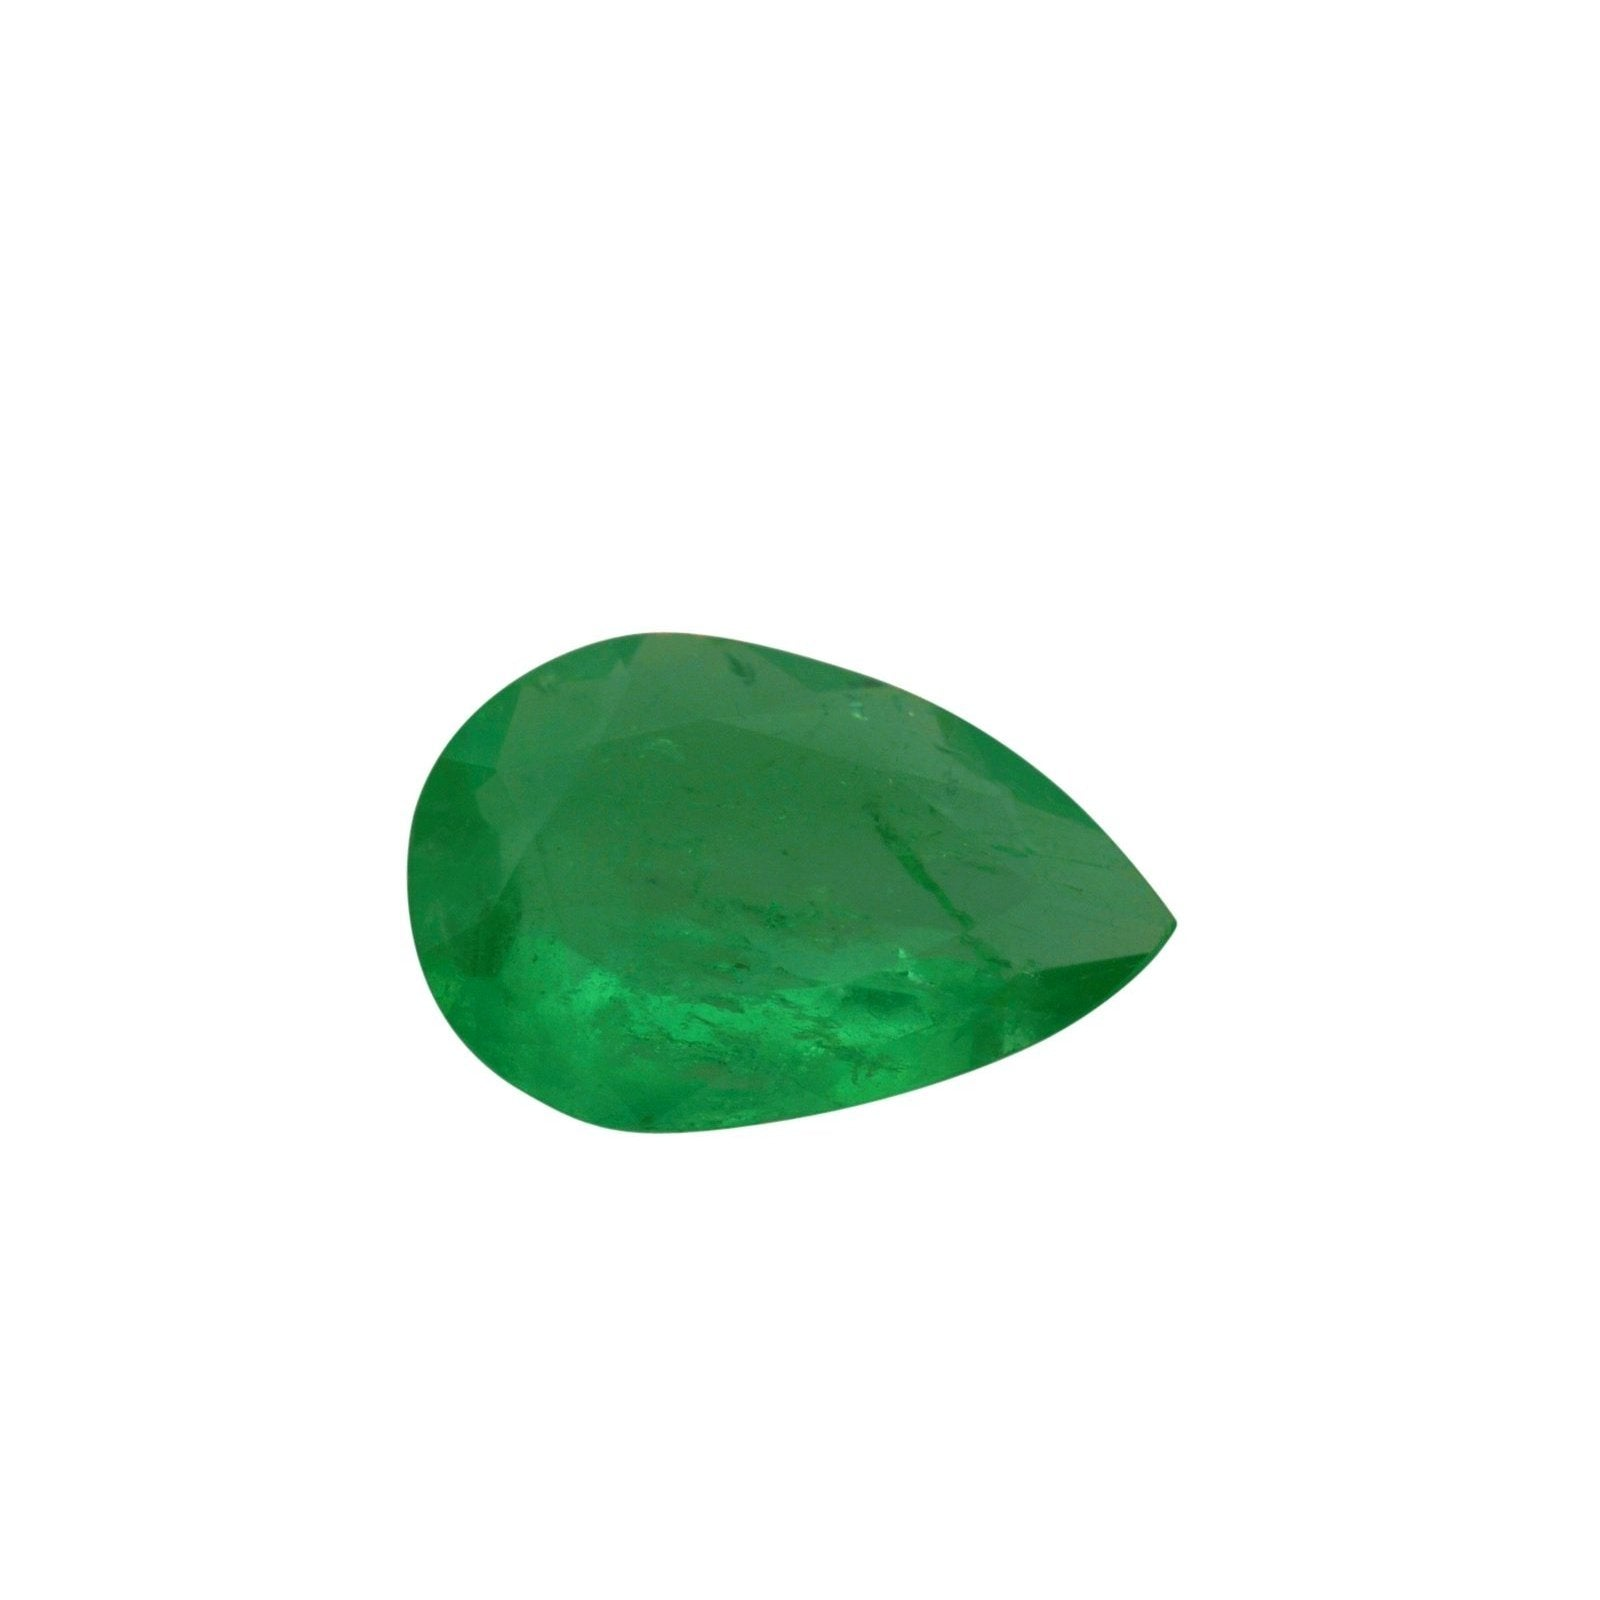 0.77 ct Pear Shape Emerald